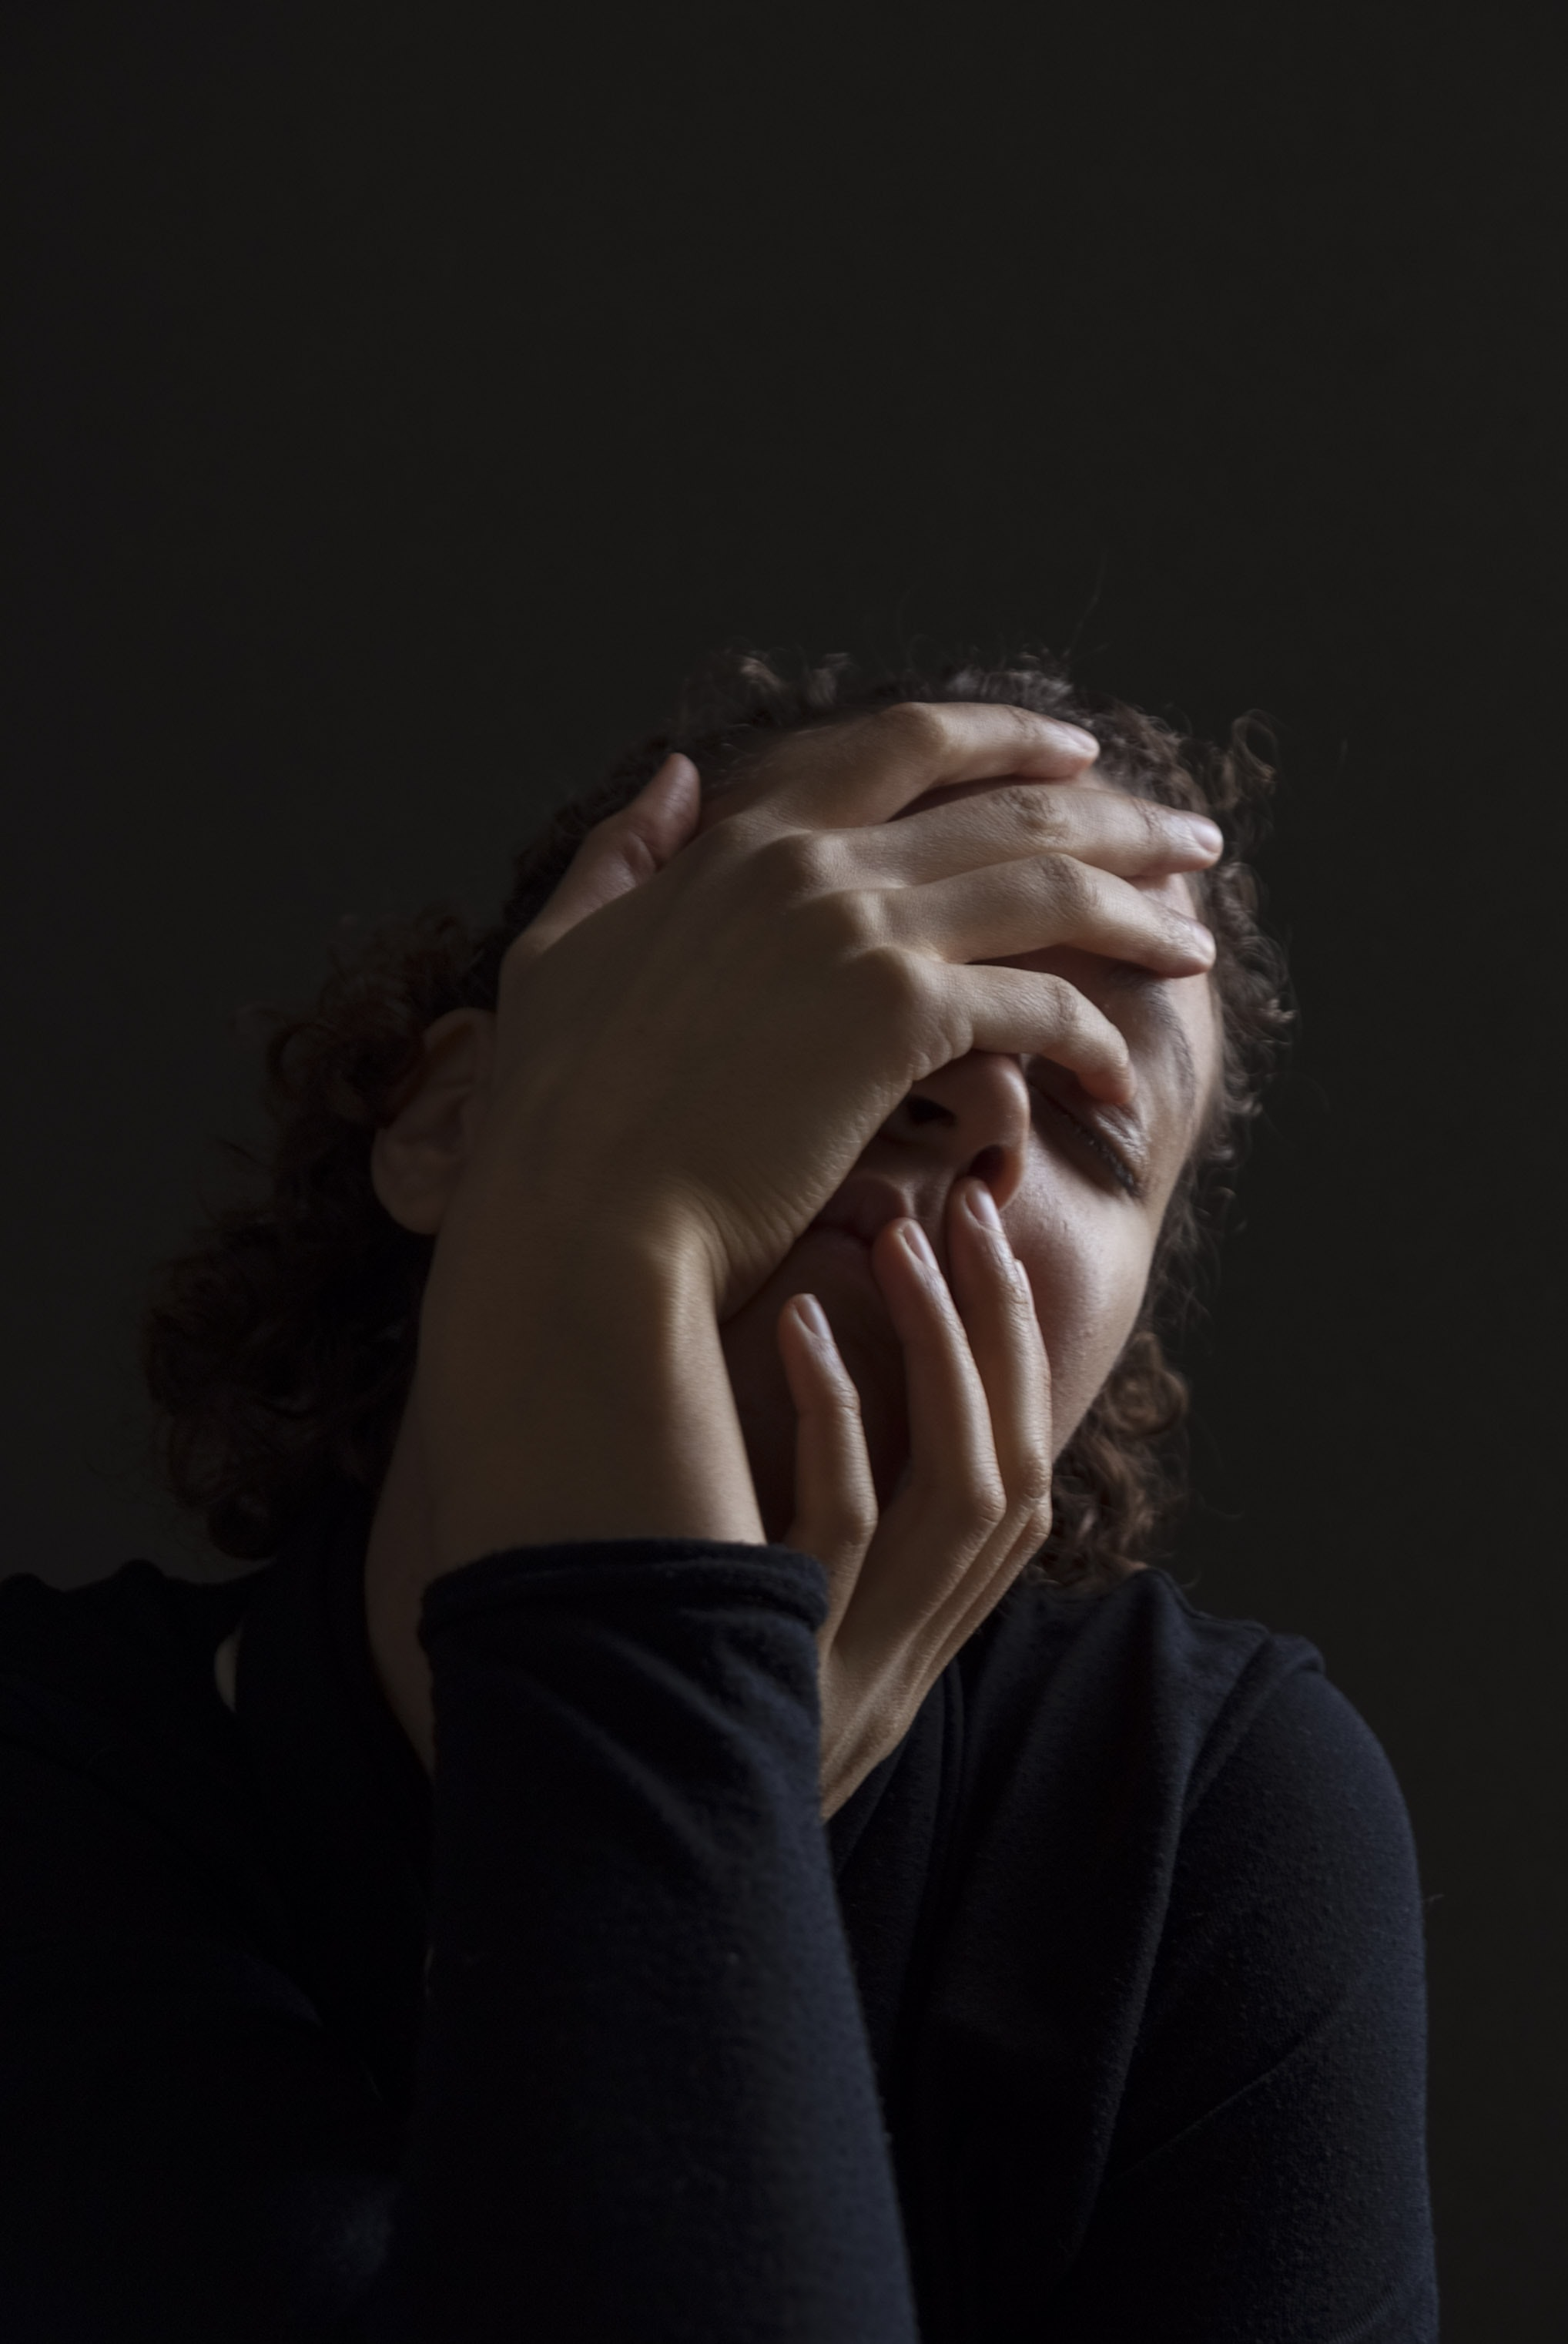 A woman in black against a black background holds both hands over her face